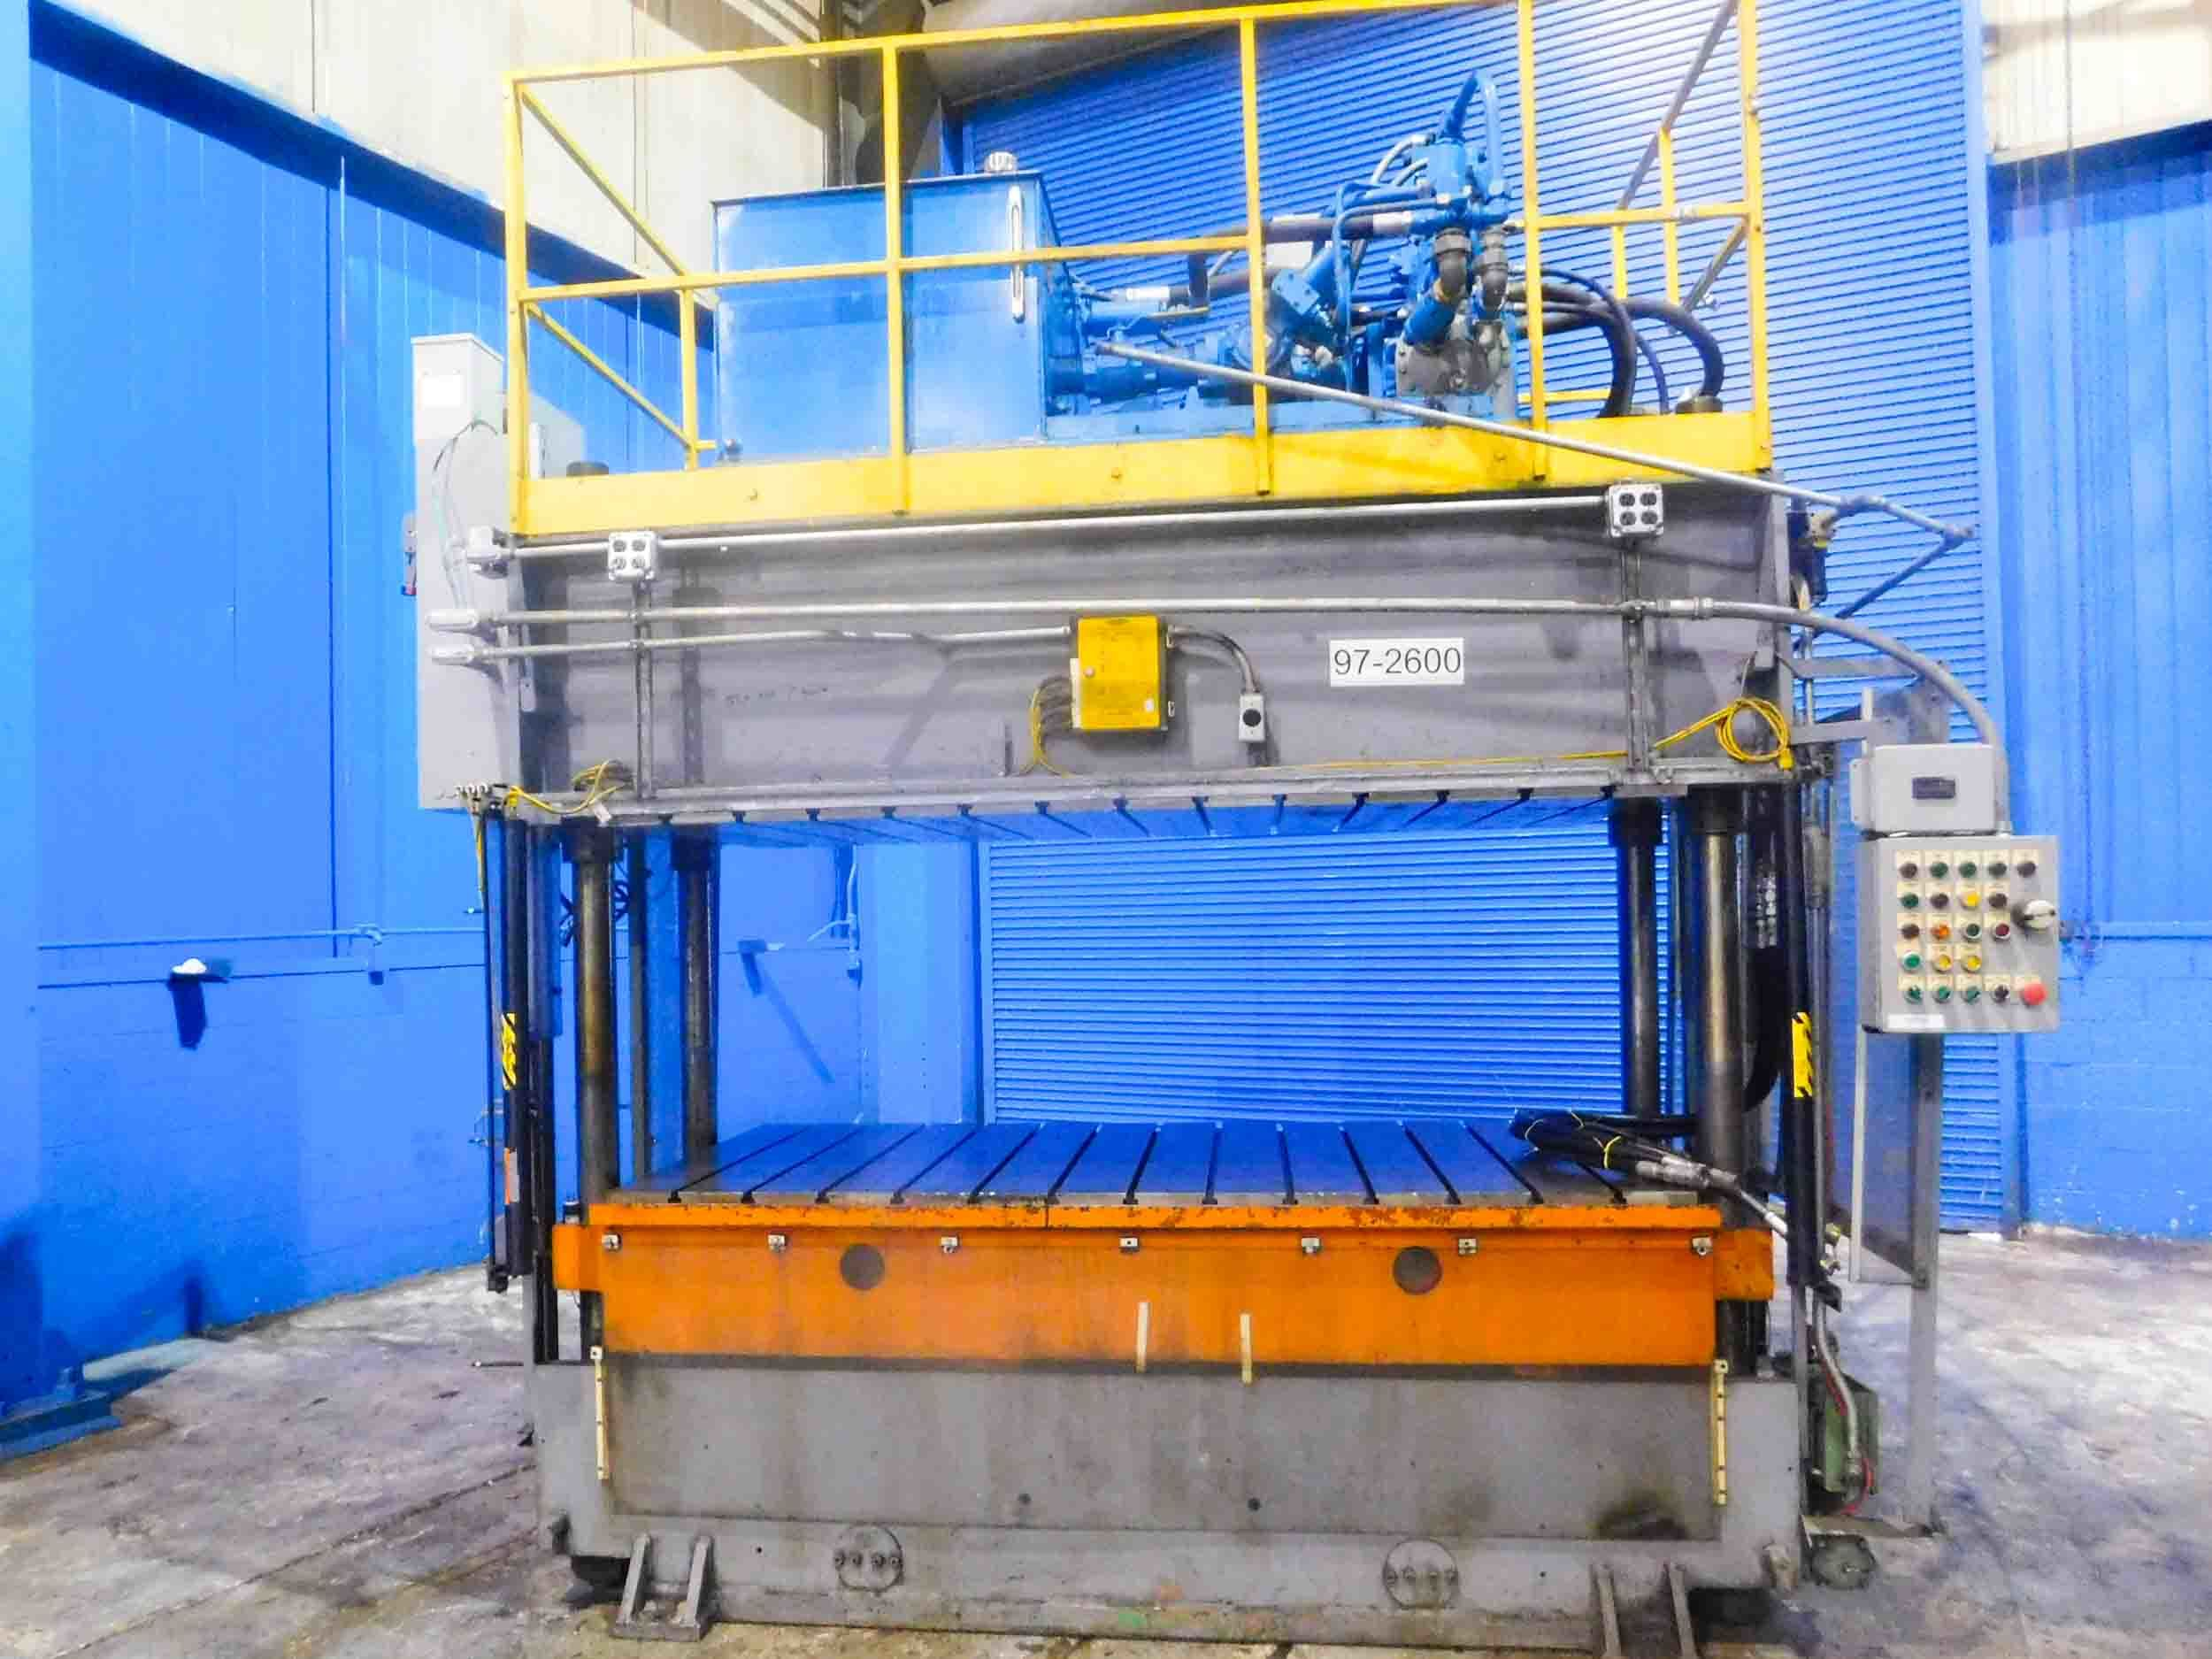 Used Presses For Sale - Jarecki - 4 Post Hydraulic Press